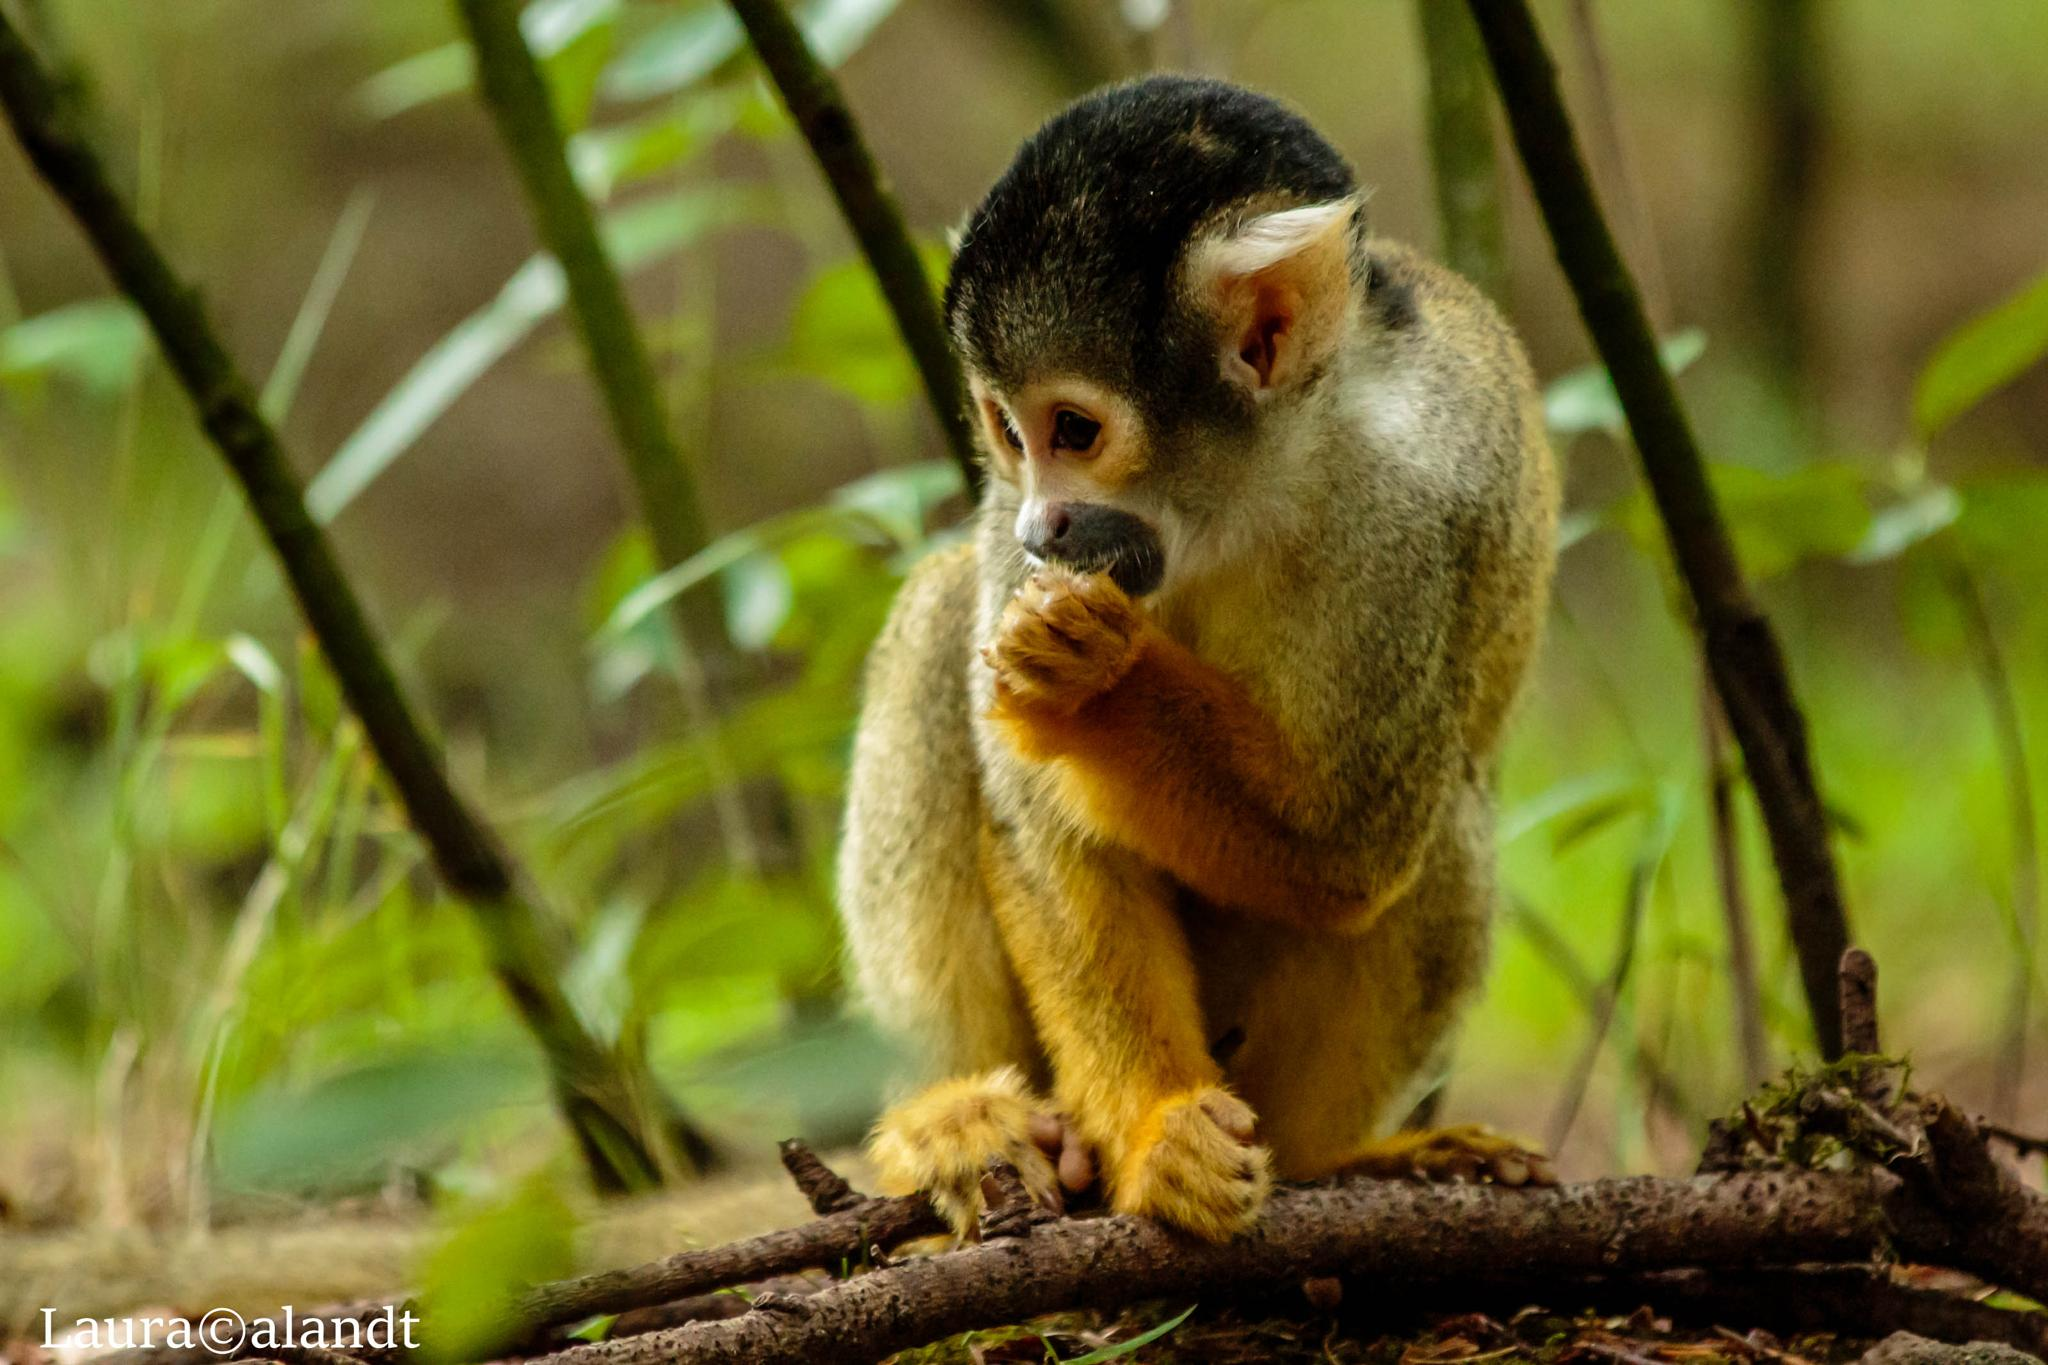 eating monkey by Laura Calandt